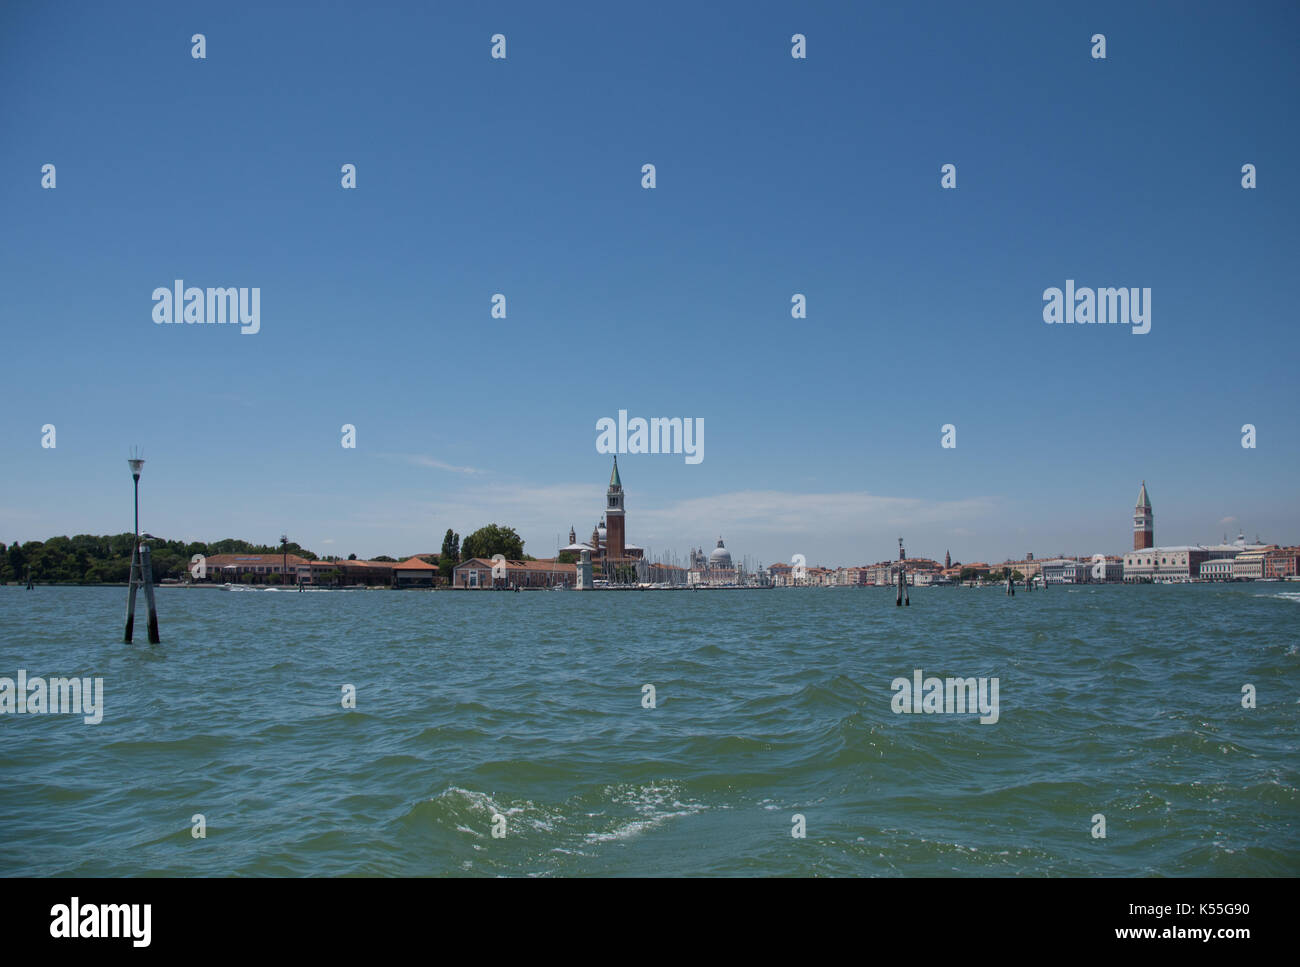 A trip to the ancient city of Venice, Romantic getaway in the sea , picturesque buildings, canals and waterways - Stock Image